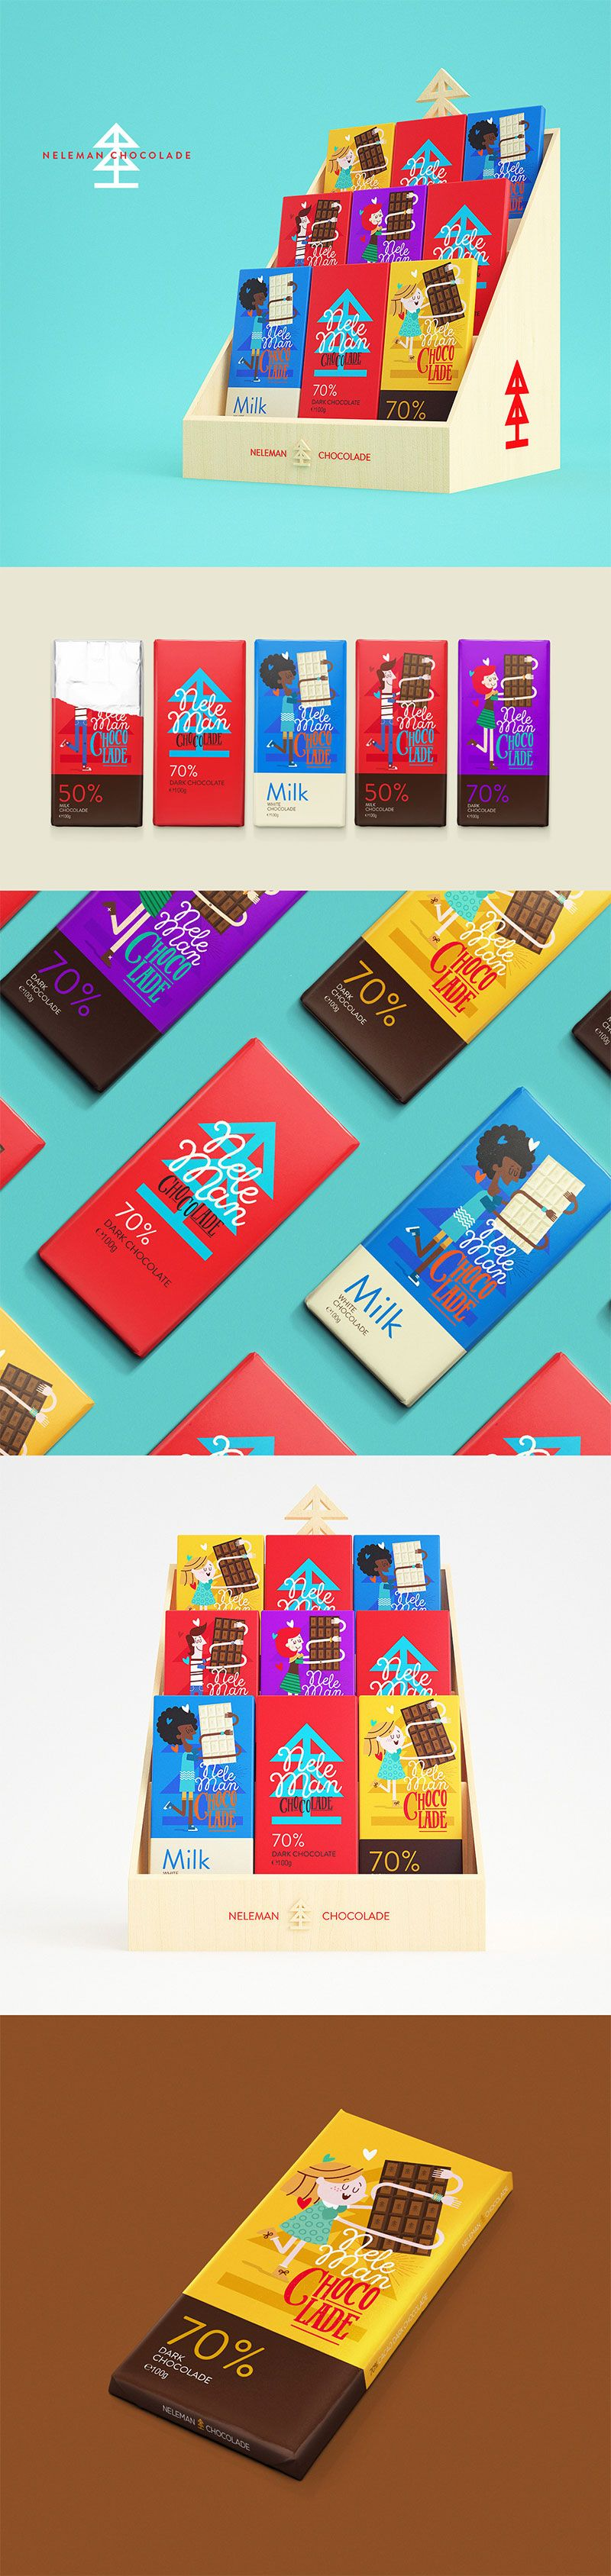 Neleman's Chocolade by Sweety & Co